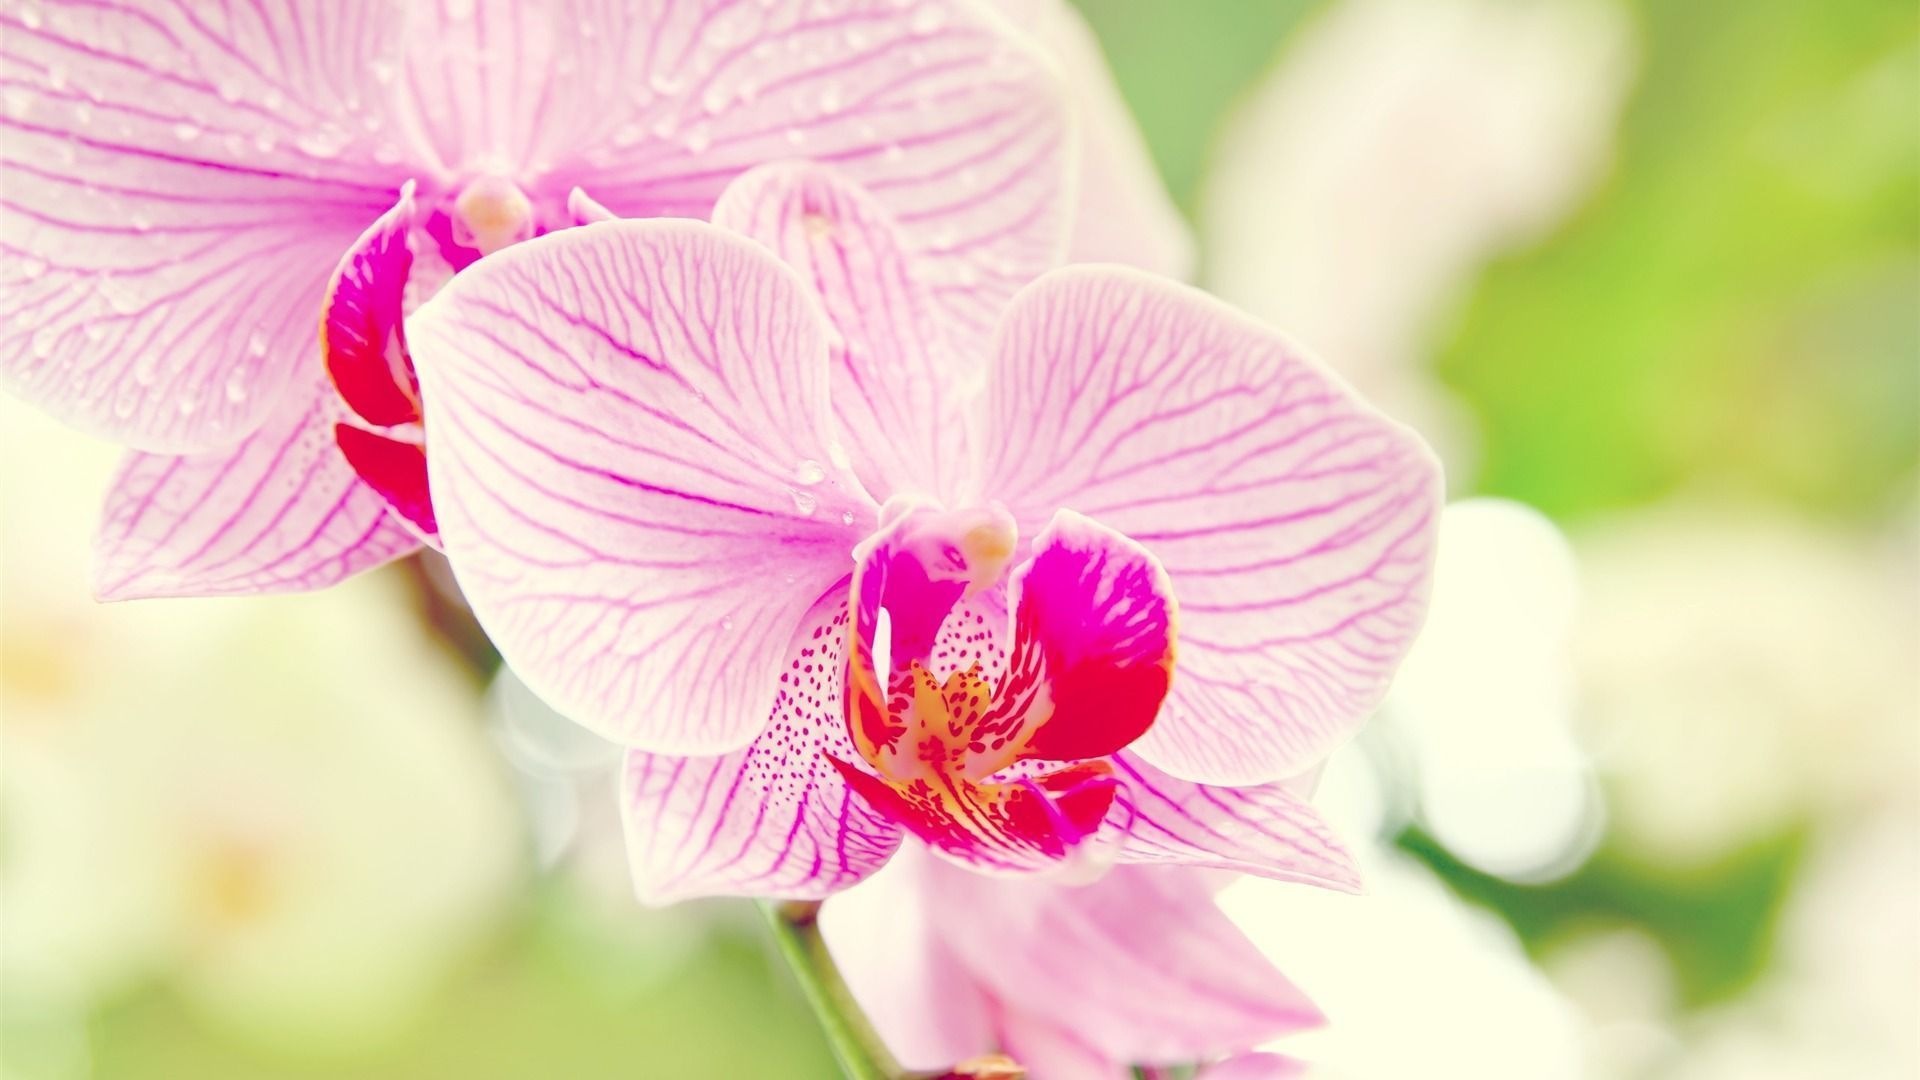 Under The Orchid Wallpaper Macro 1920x1080 Wallpaper Download Orchid Flower Pink Orchids Orchid Wallpaper